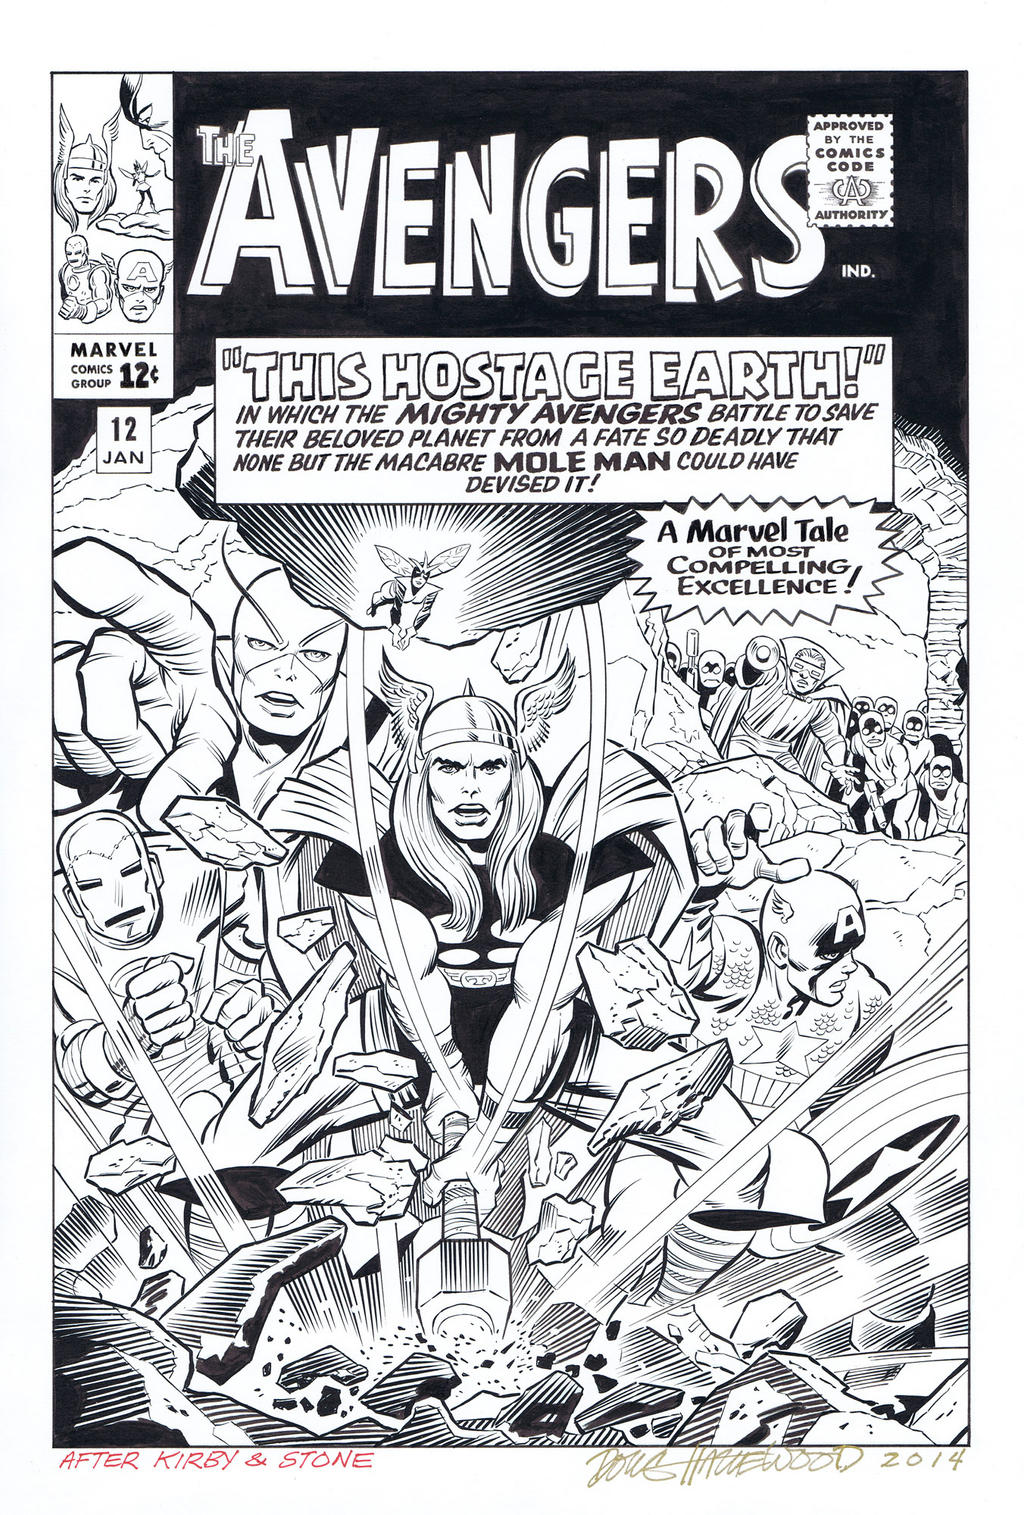 AVENGERS #12 (1965) Cover Recreation HAZLEWOOD by DRHazlewood